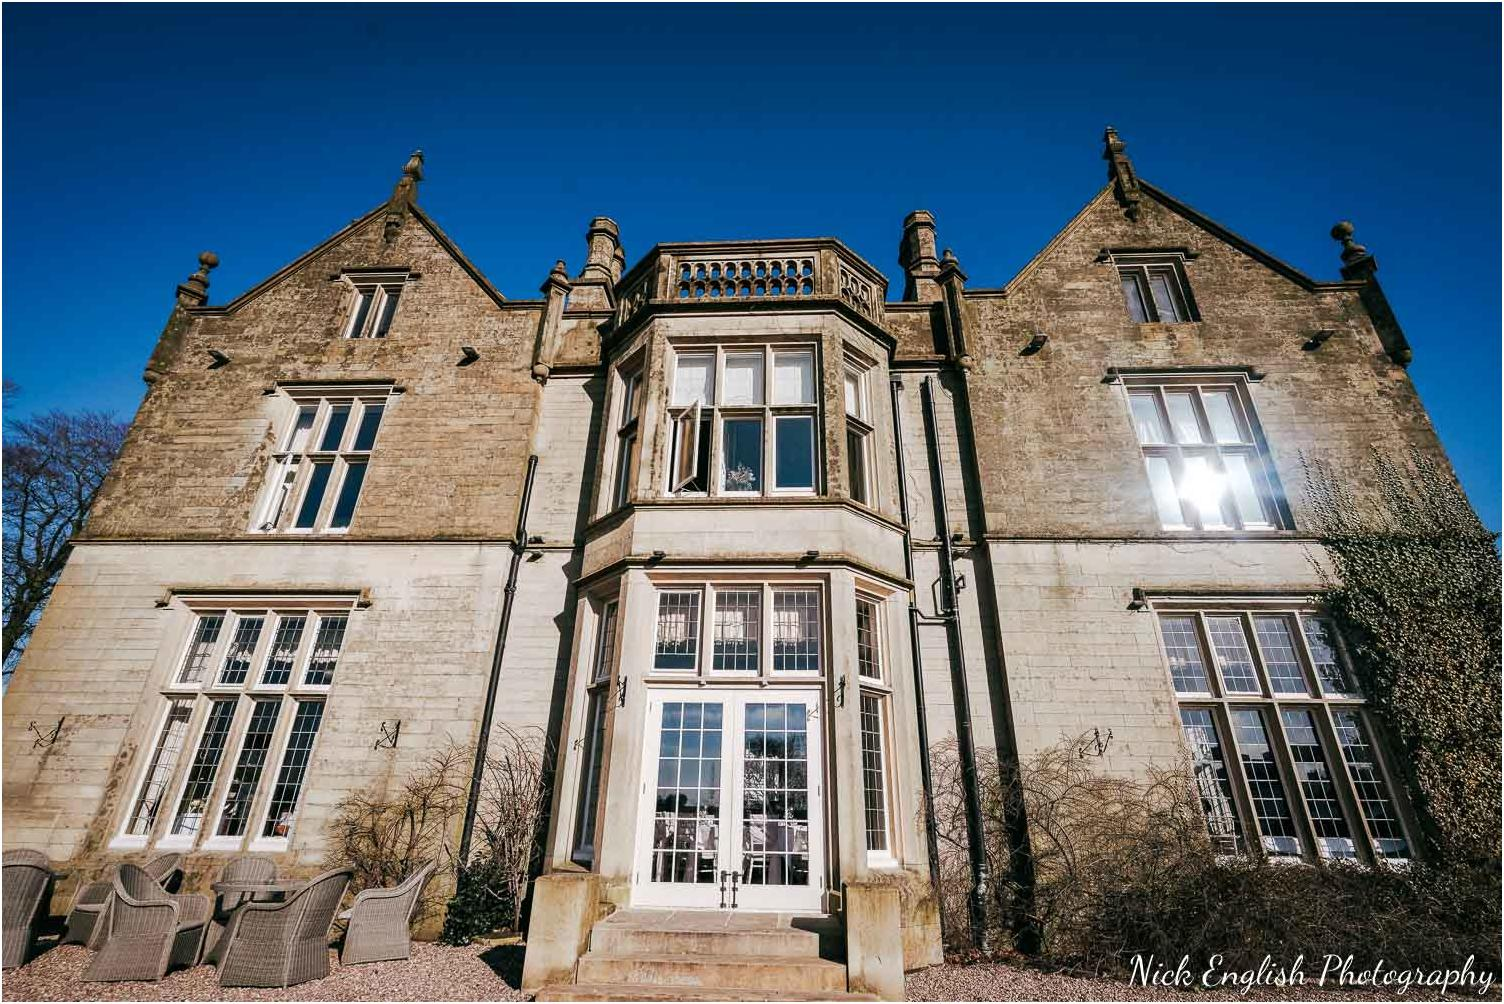 Falcon_Manor_Yorkshire_Wedding_Photographer-6.jpg